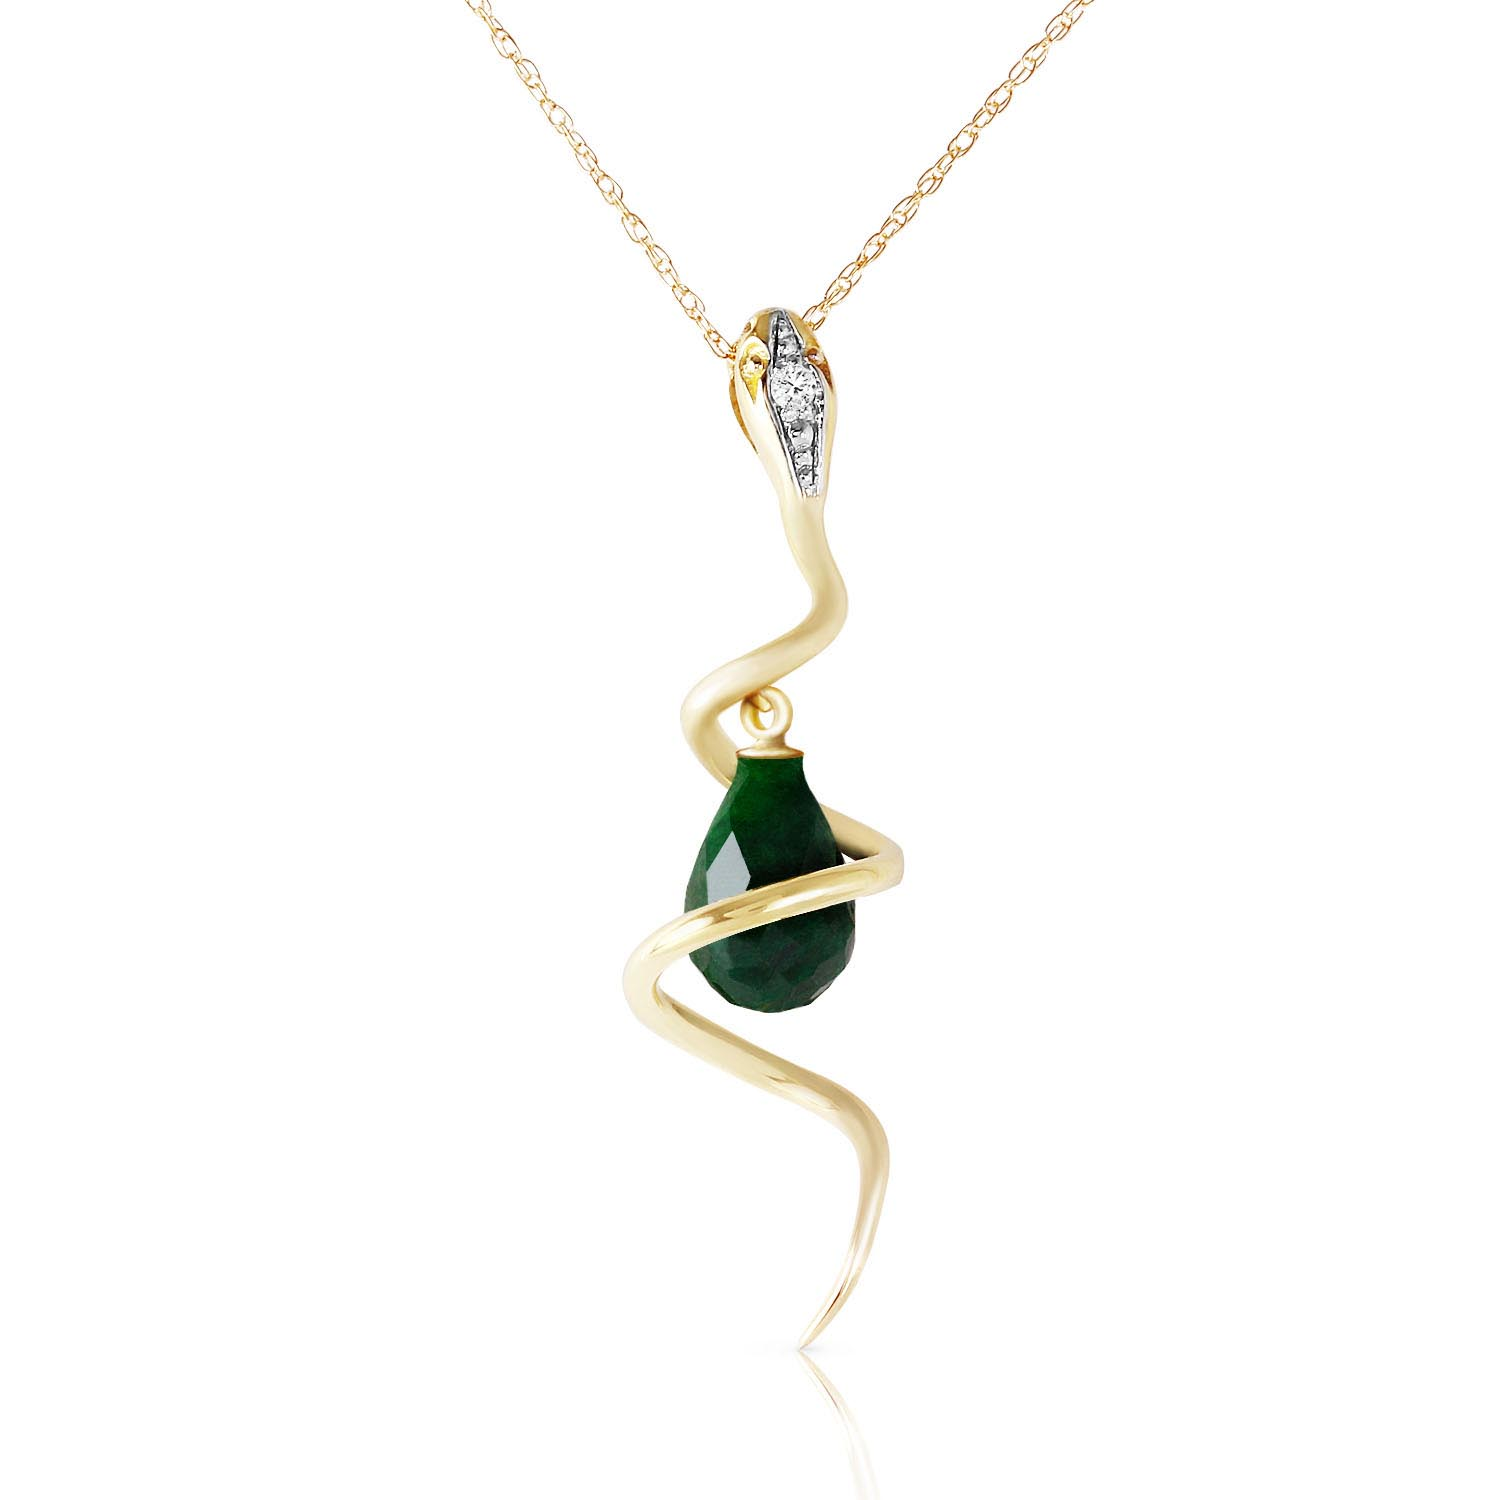 Emerald and Diamond Serpent Pendant Necklace 3.3ct in 9ct Gold